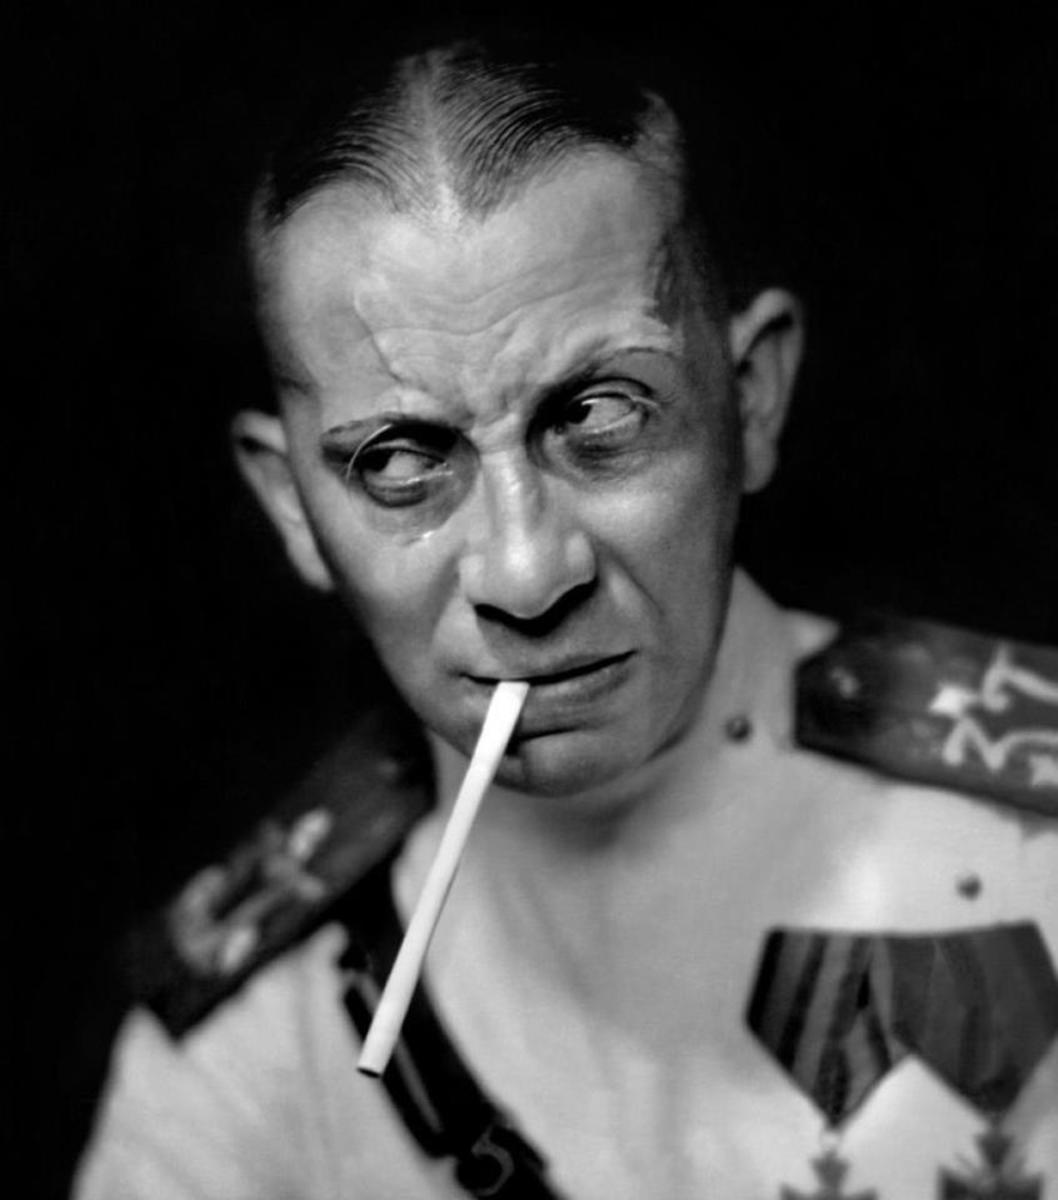 Pre-War Von Stroheim: note the very large cranium, bulbous nose, the very large ears and the prematurely receding hairline.